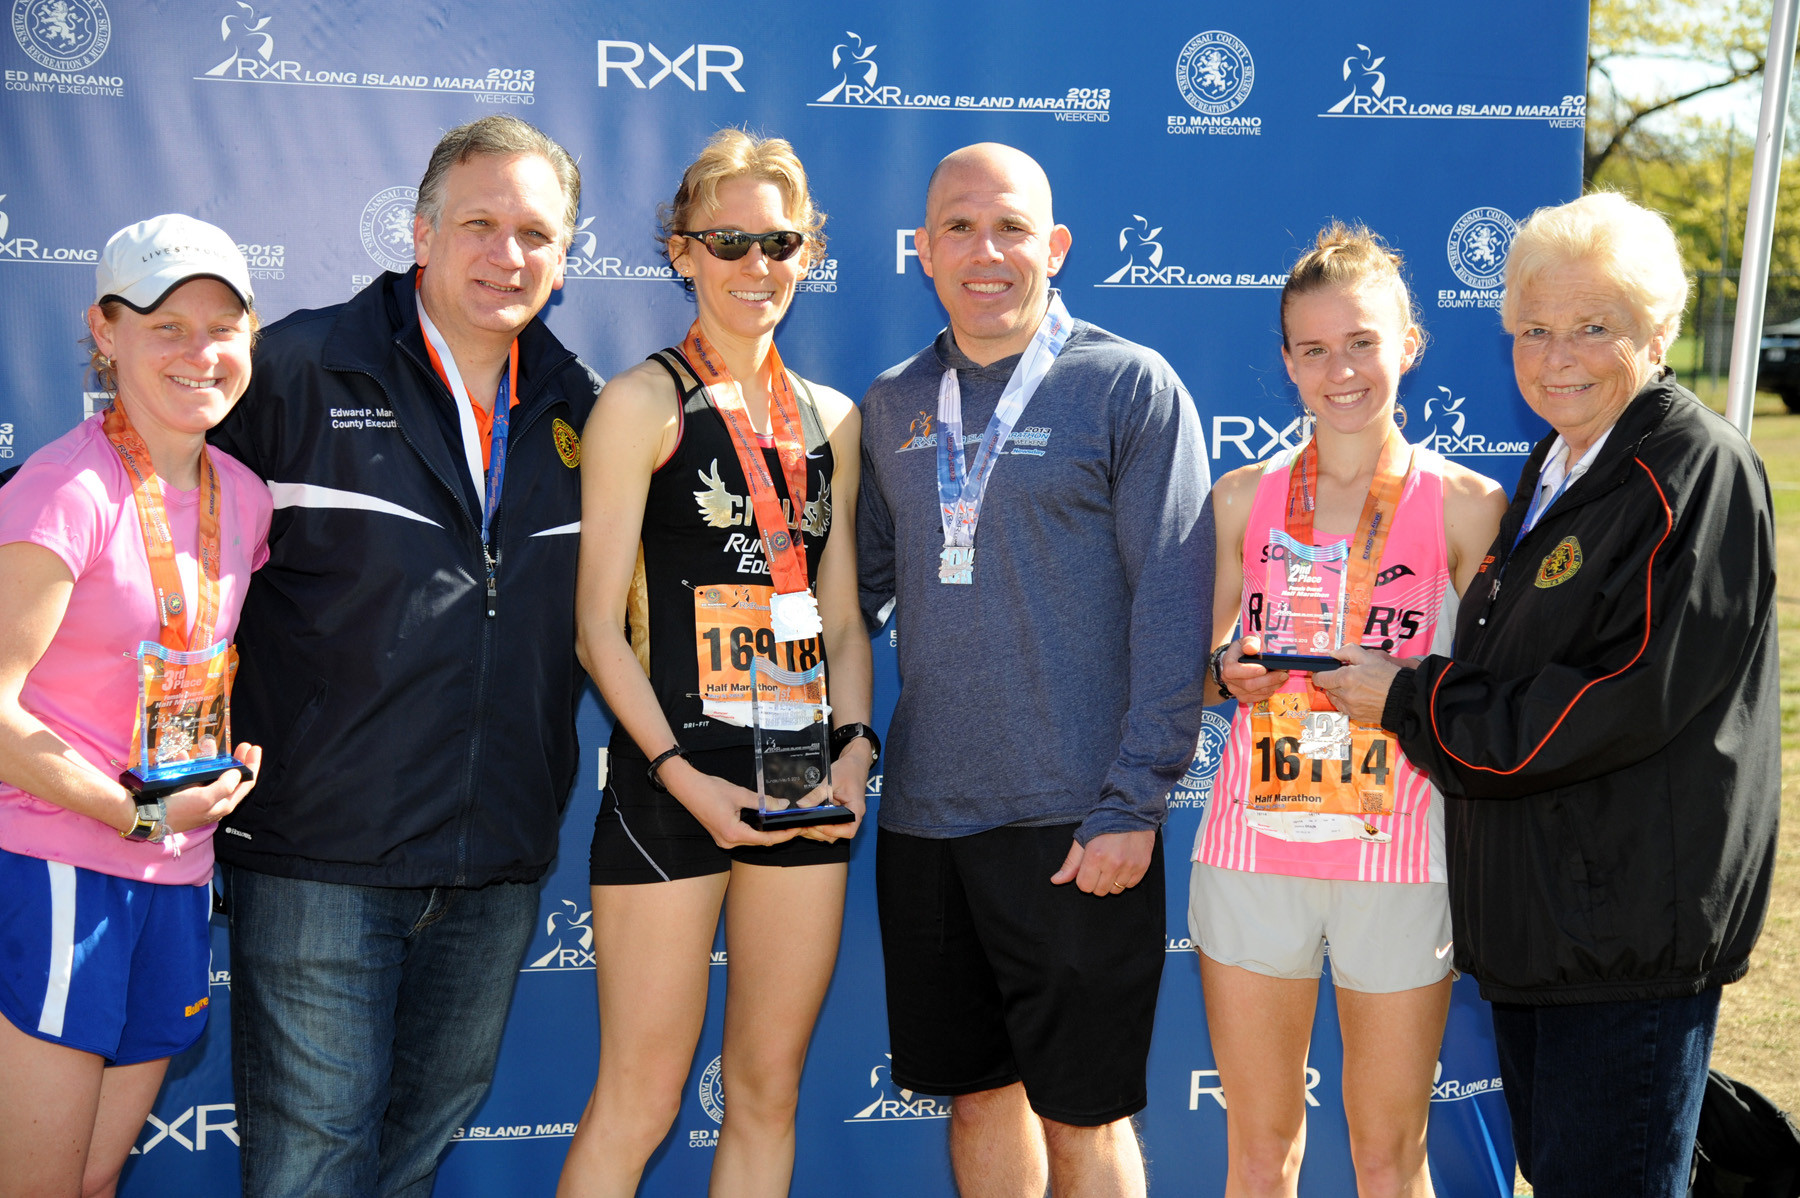 County Executive Ed Mangano, second from left, and Scott Rechler, CEO of RXR realty, the race's title sponsor, with the women's top three half marathon finishers, first-place Jodie Robertson, third from left, second-place Stefanie Braun, second from right, and third-place Lindsey Block, far left. Also pictured is County Legislator Rose Walker.